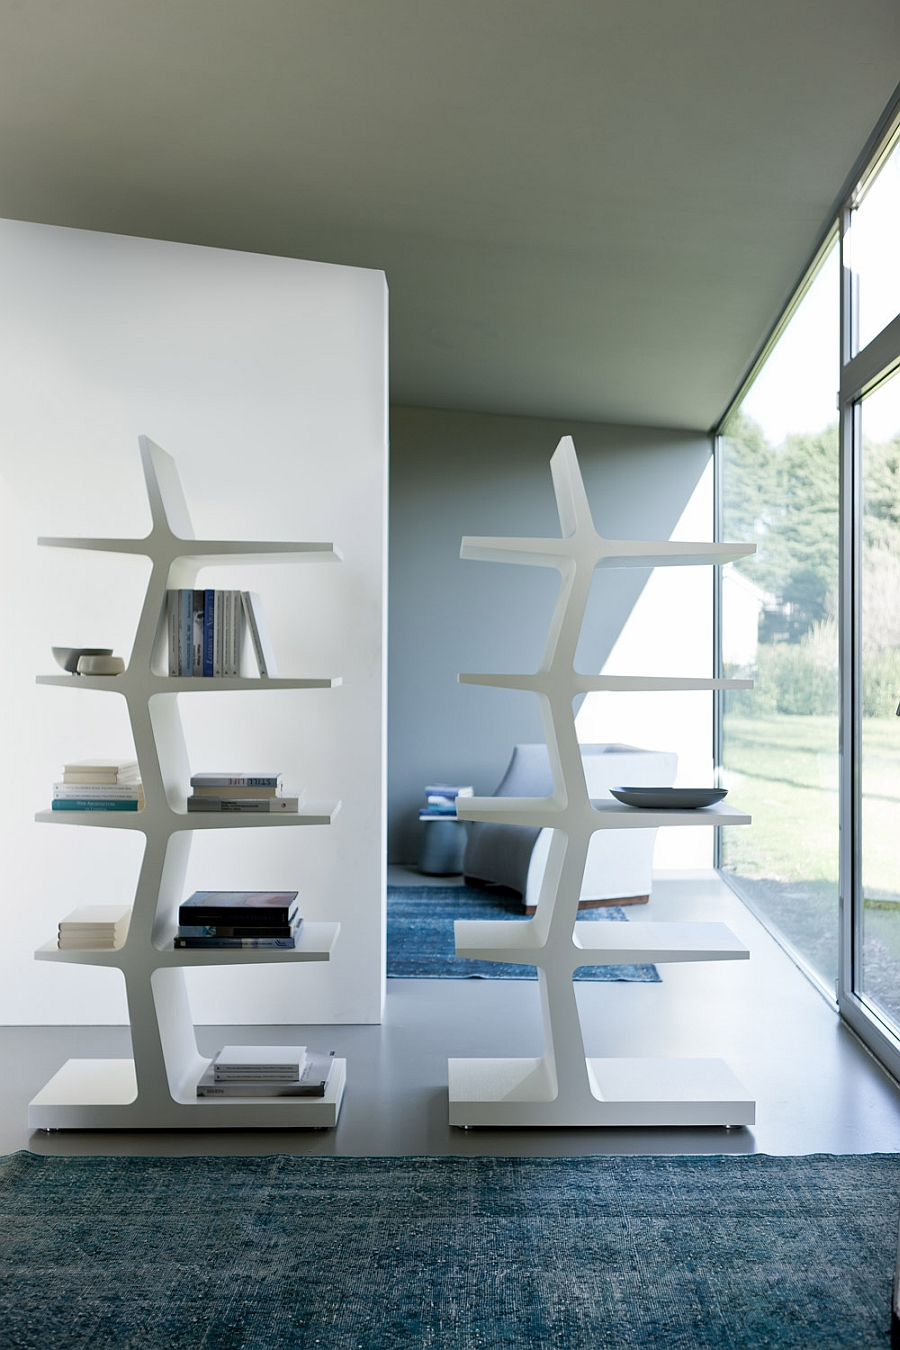 Contemporary white version of the Zeus bookshelf